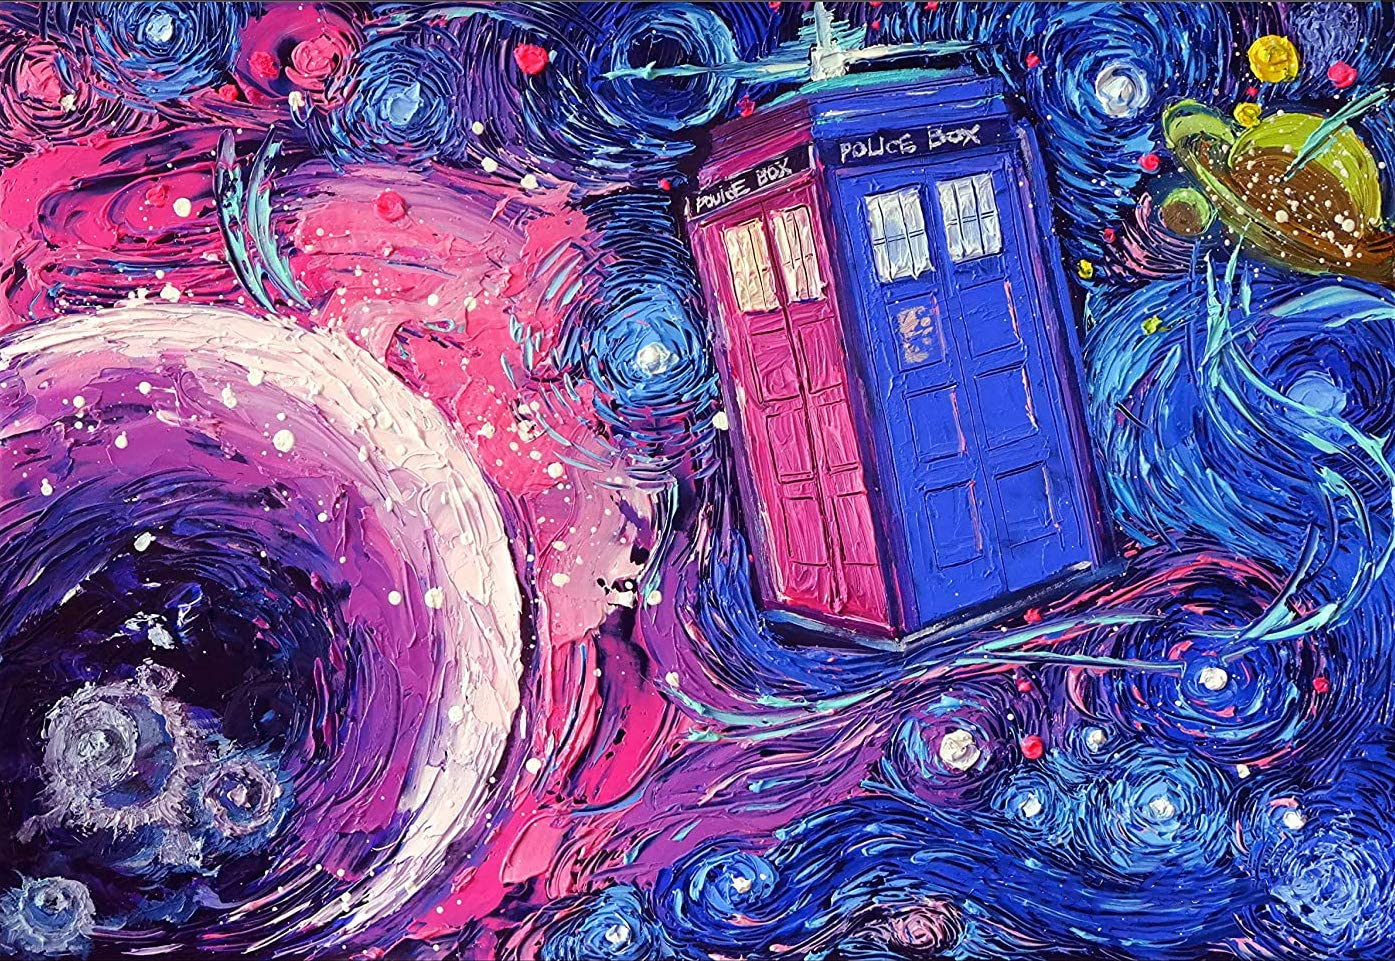 DIY 5D Diamond Painting Kits for Adults Full Drill Diamond Painting by Number Tardis Dr Who Doctor Telephone Booth Wall Decor Vincent Van Gogh Starry Night for Home Wall Decor 11.8x15.8in